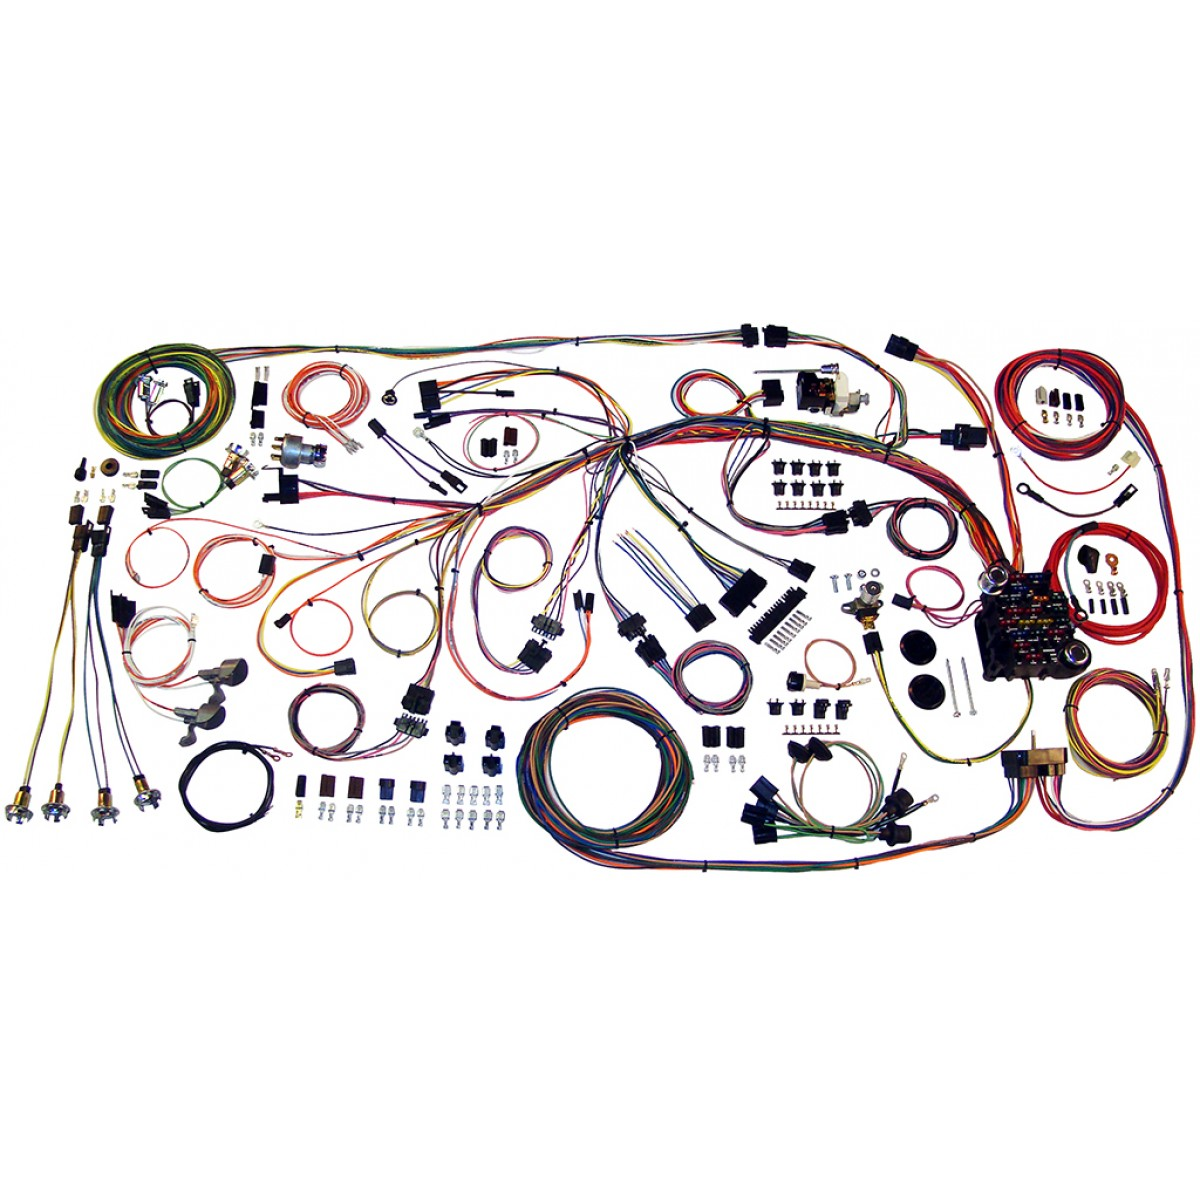 510217 impala complete wiring harness kit 1959 1960 impala part 510217 impala full wire harness 1959 1960 chevy impala wire harness complete wiring harness kit wiring harness kits at fashall.co